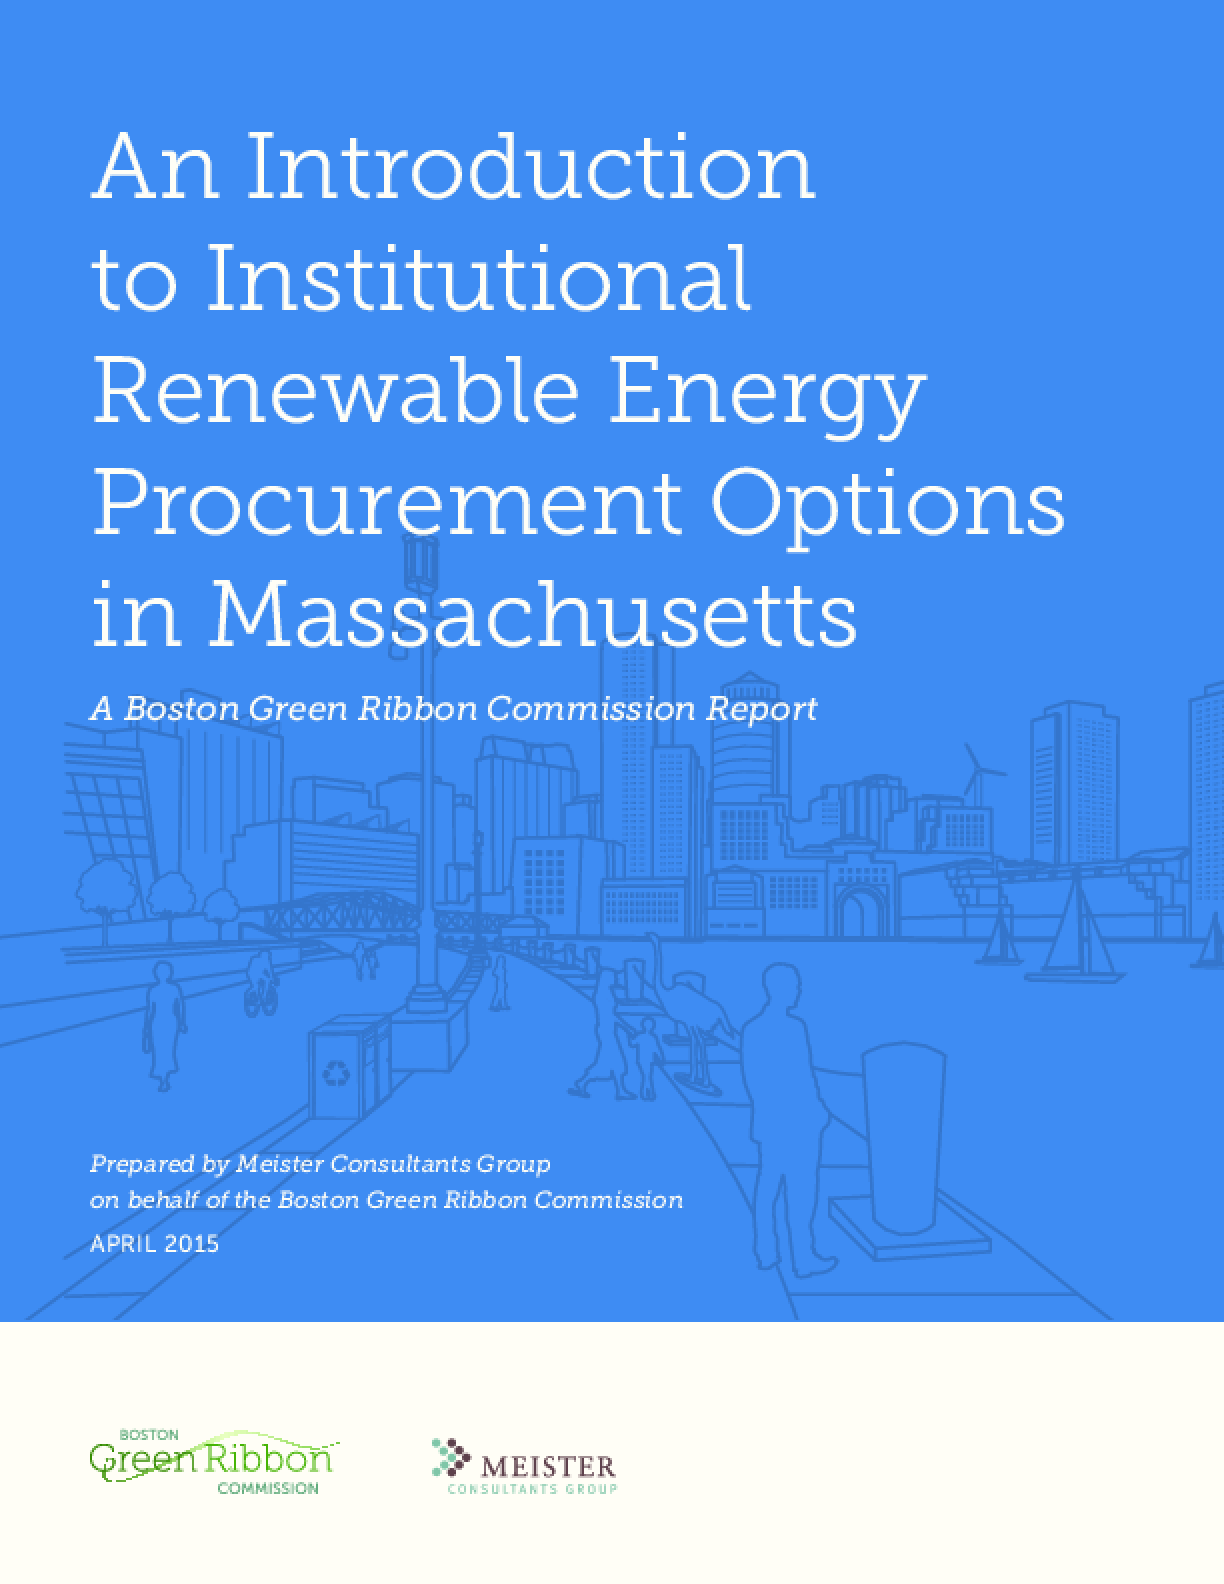 An Introduction to Institutional Renewable Energy Procurement Options in Massachusetts